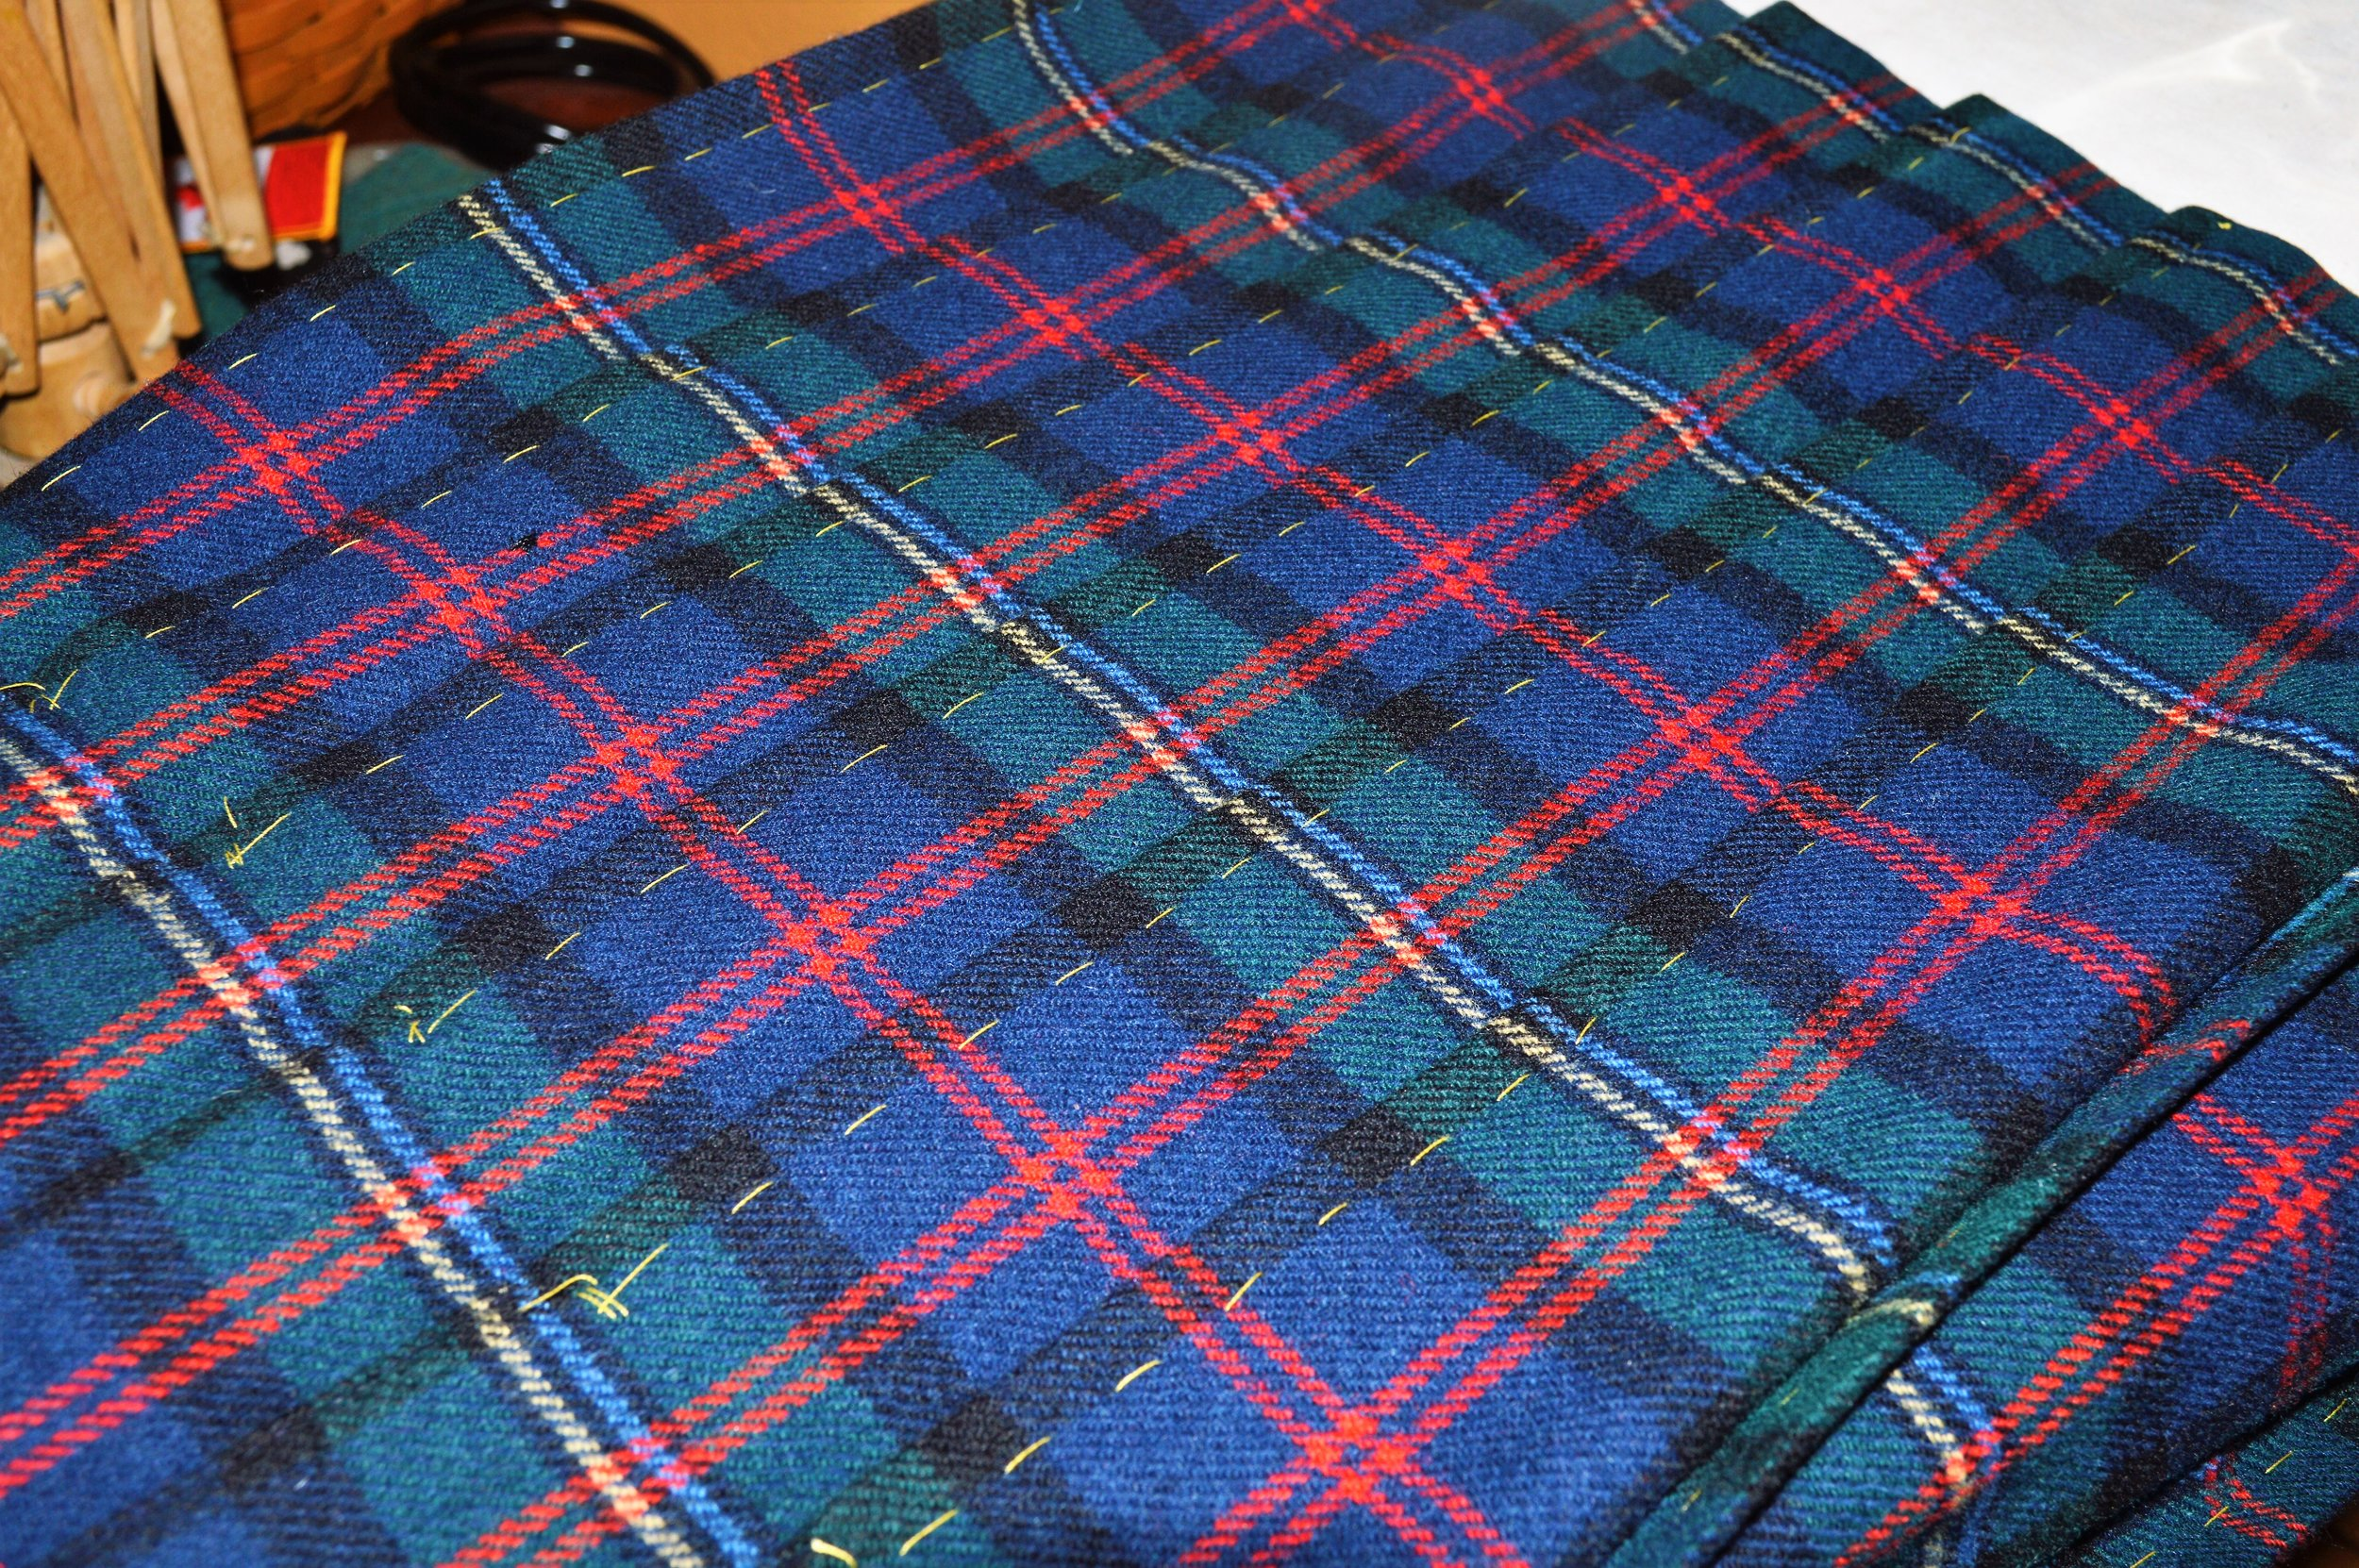 Pleats held in place with basting stitches on the right side